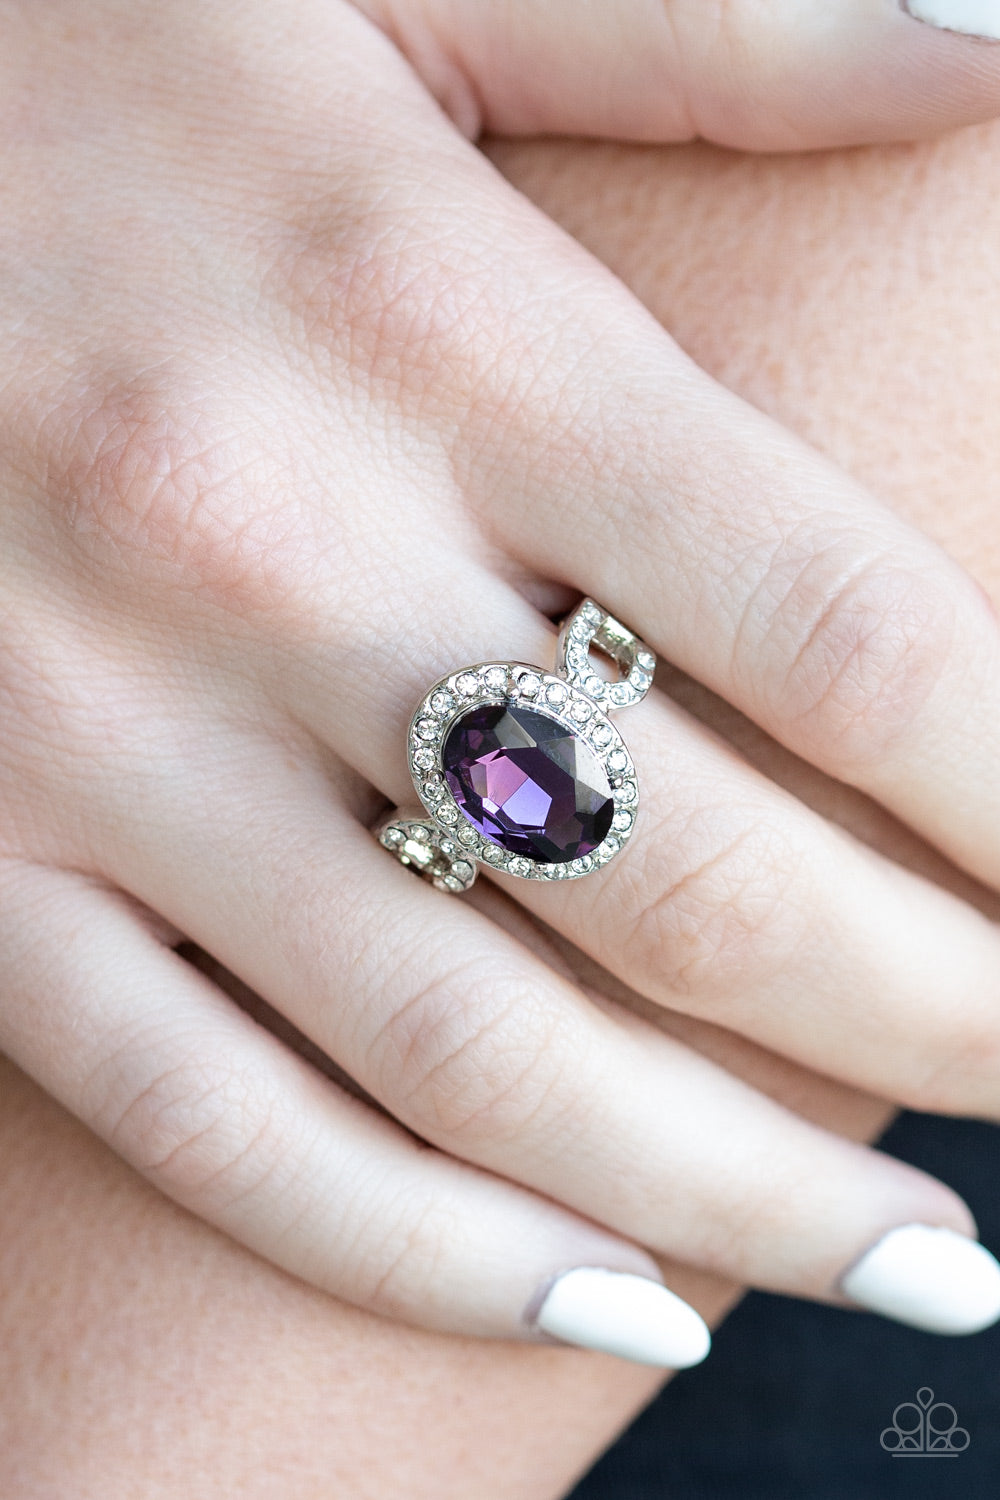 Paparazzi - Magnificent Majesty - Purple Ring - Classy Jewels by Linda